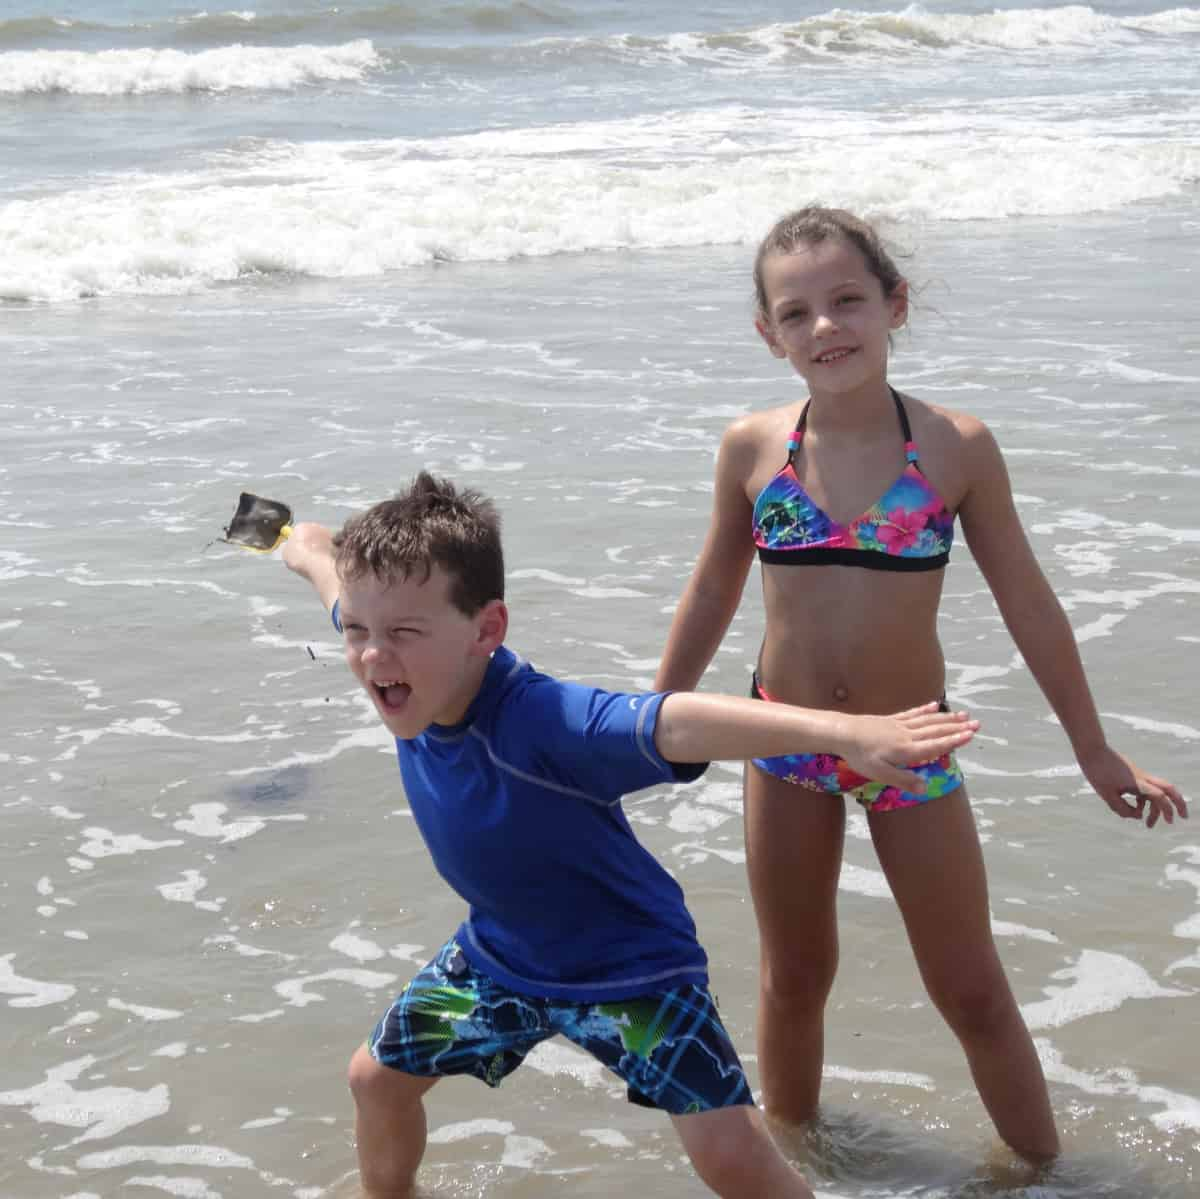 Playing at Surfside Beach